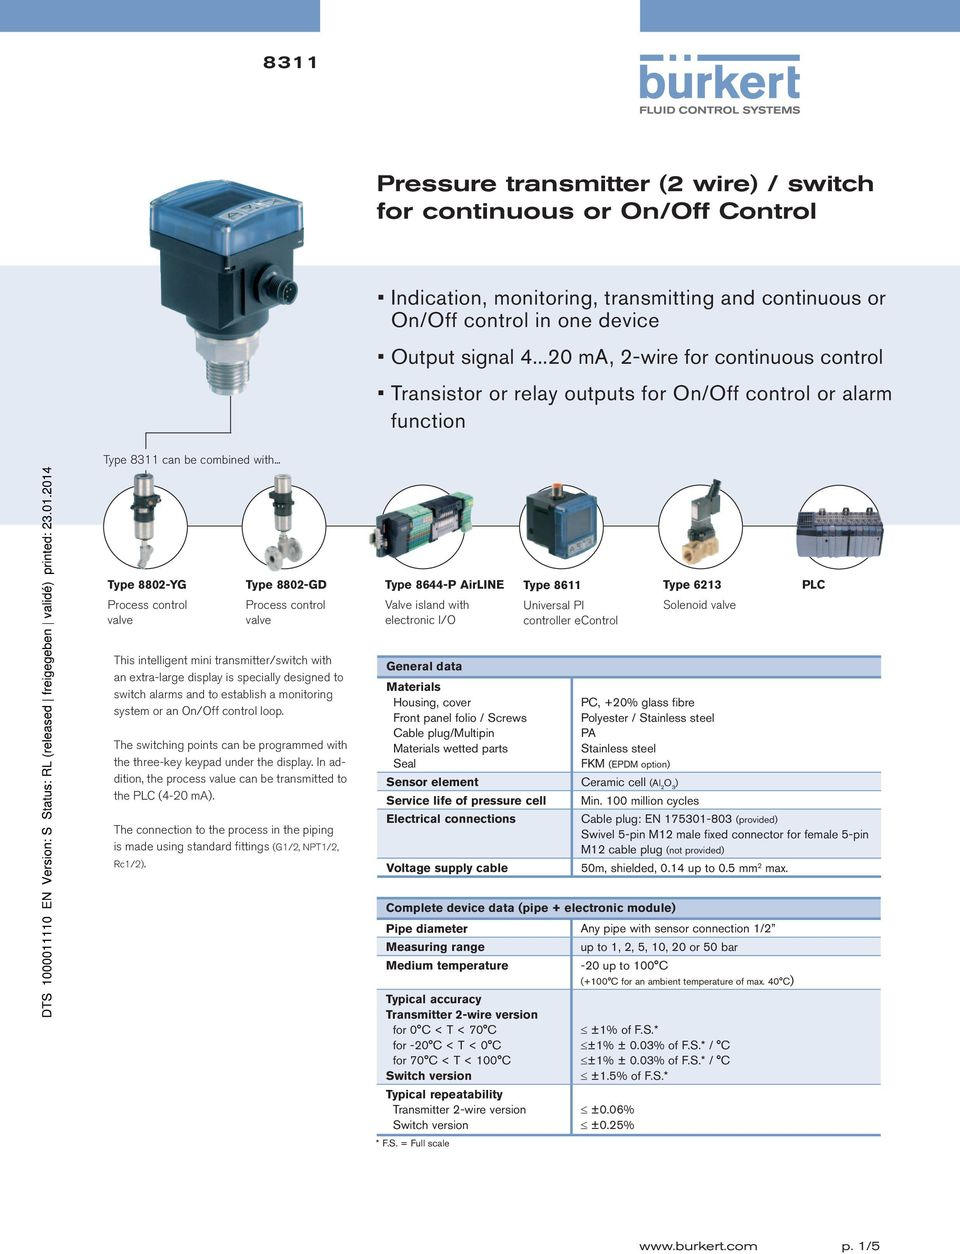 .. Type 8802-YG Type 8802-GD Type 8644-P AirLINE Type 8611 Type 6213 PLC Valve island with electronic I/O Universal PI controller econtrol Solenoid This intelligent mini transmitter/switch with an